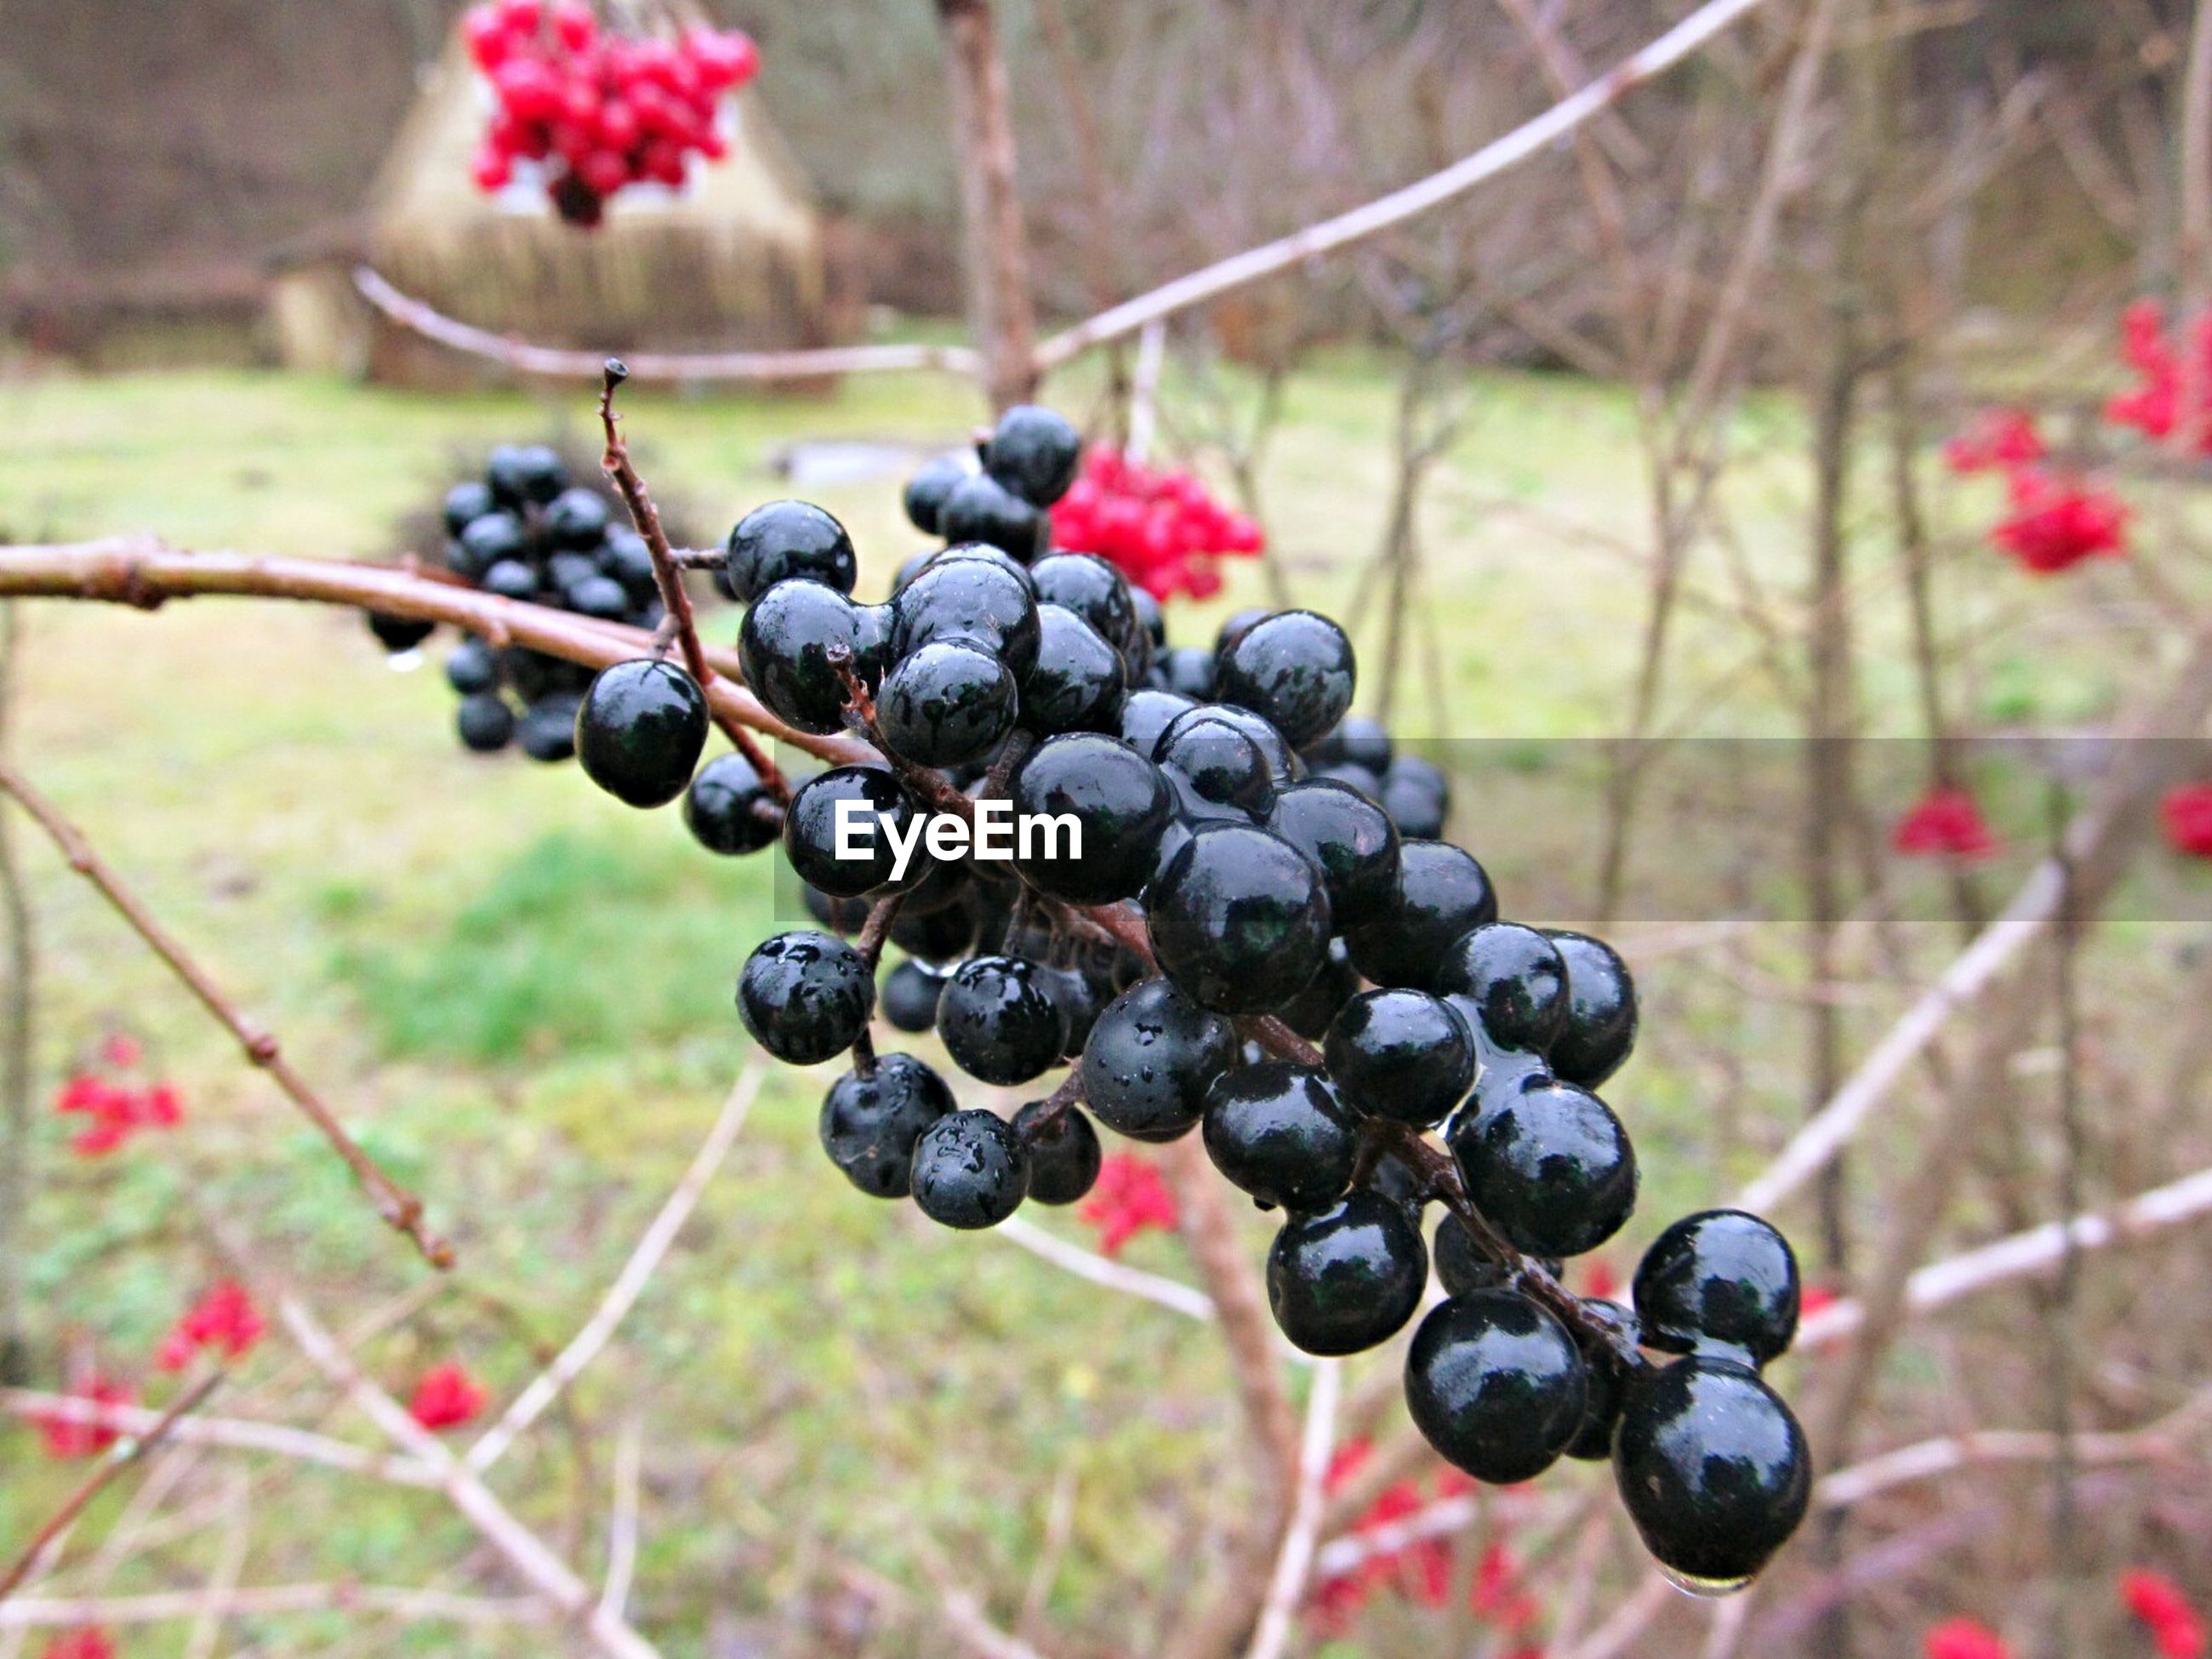 fruit, food and drink, food, freshness, berry fruit, healthy eating, focus on foreground, close-up, berry, ripe, grape, growth, bunch, tree, selective focus, nature, vineyard, abundance, blueberry, branch